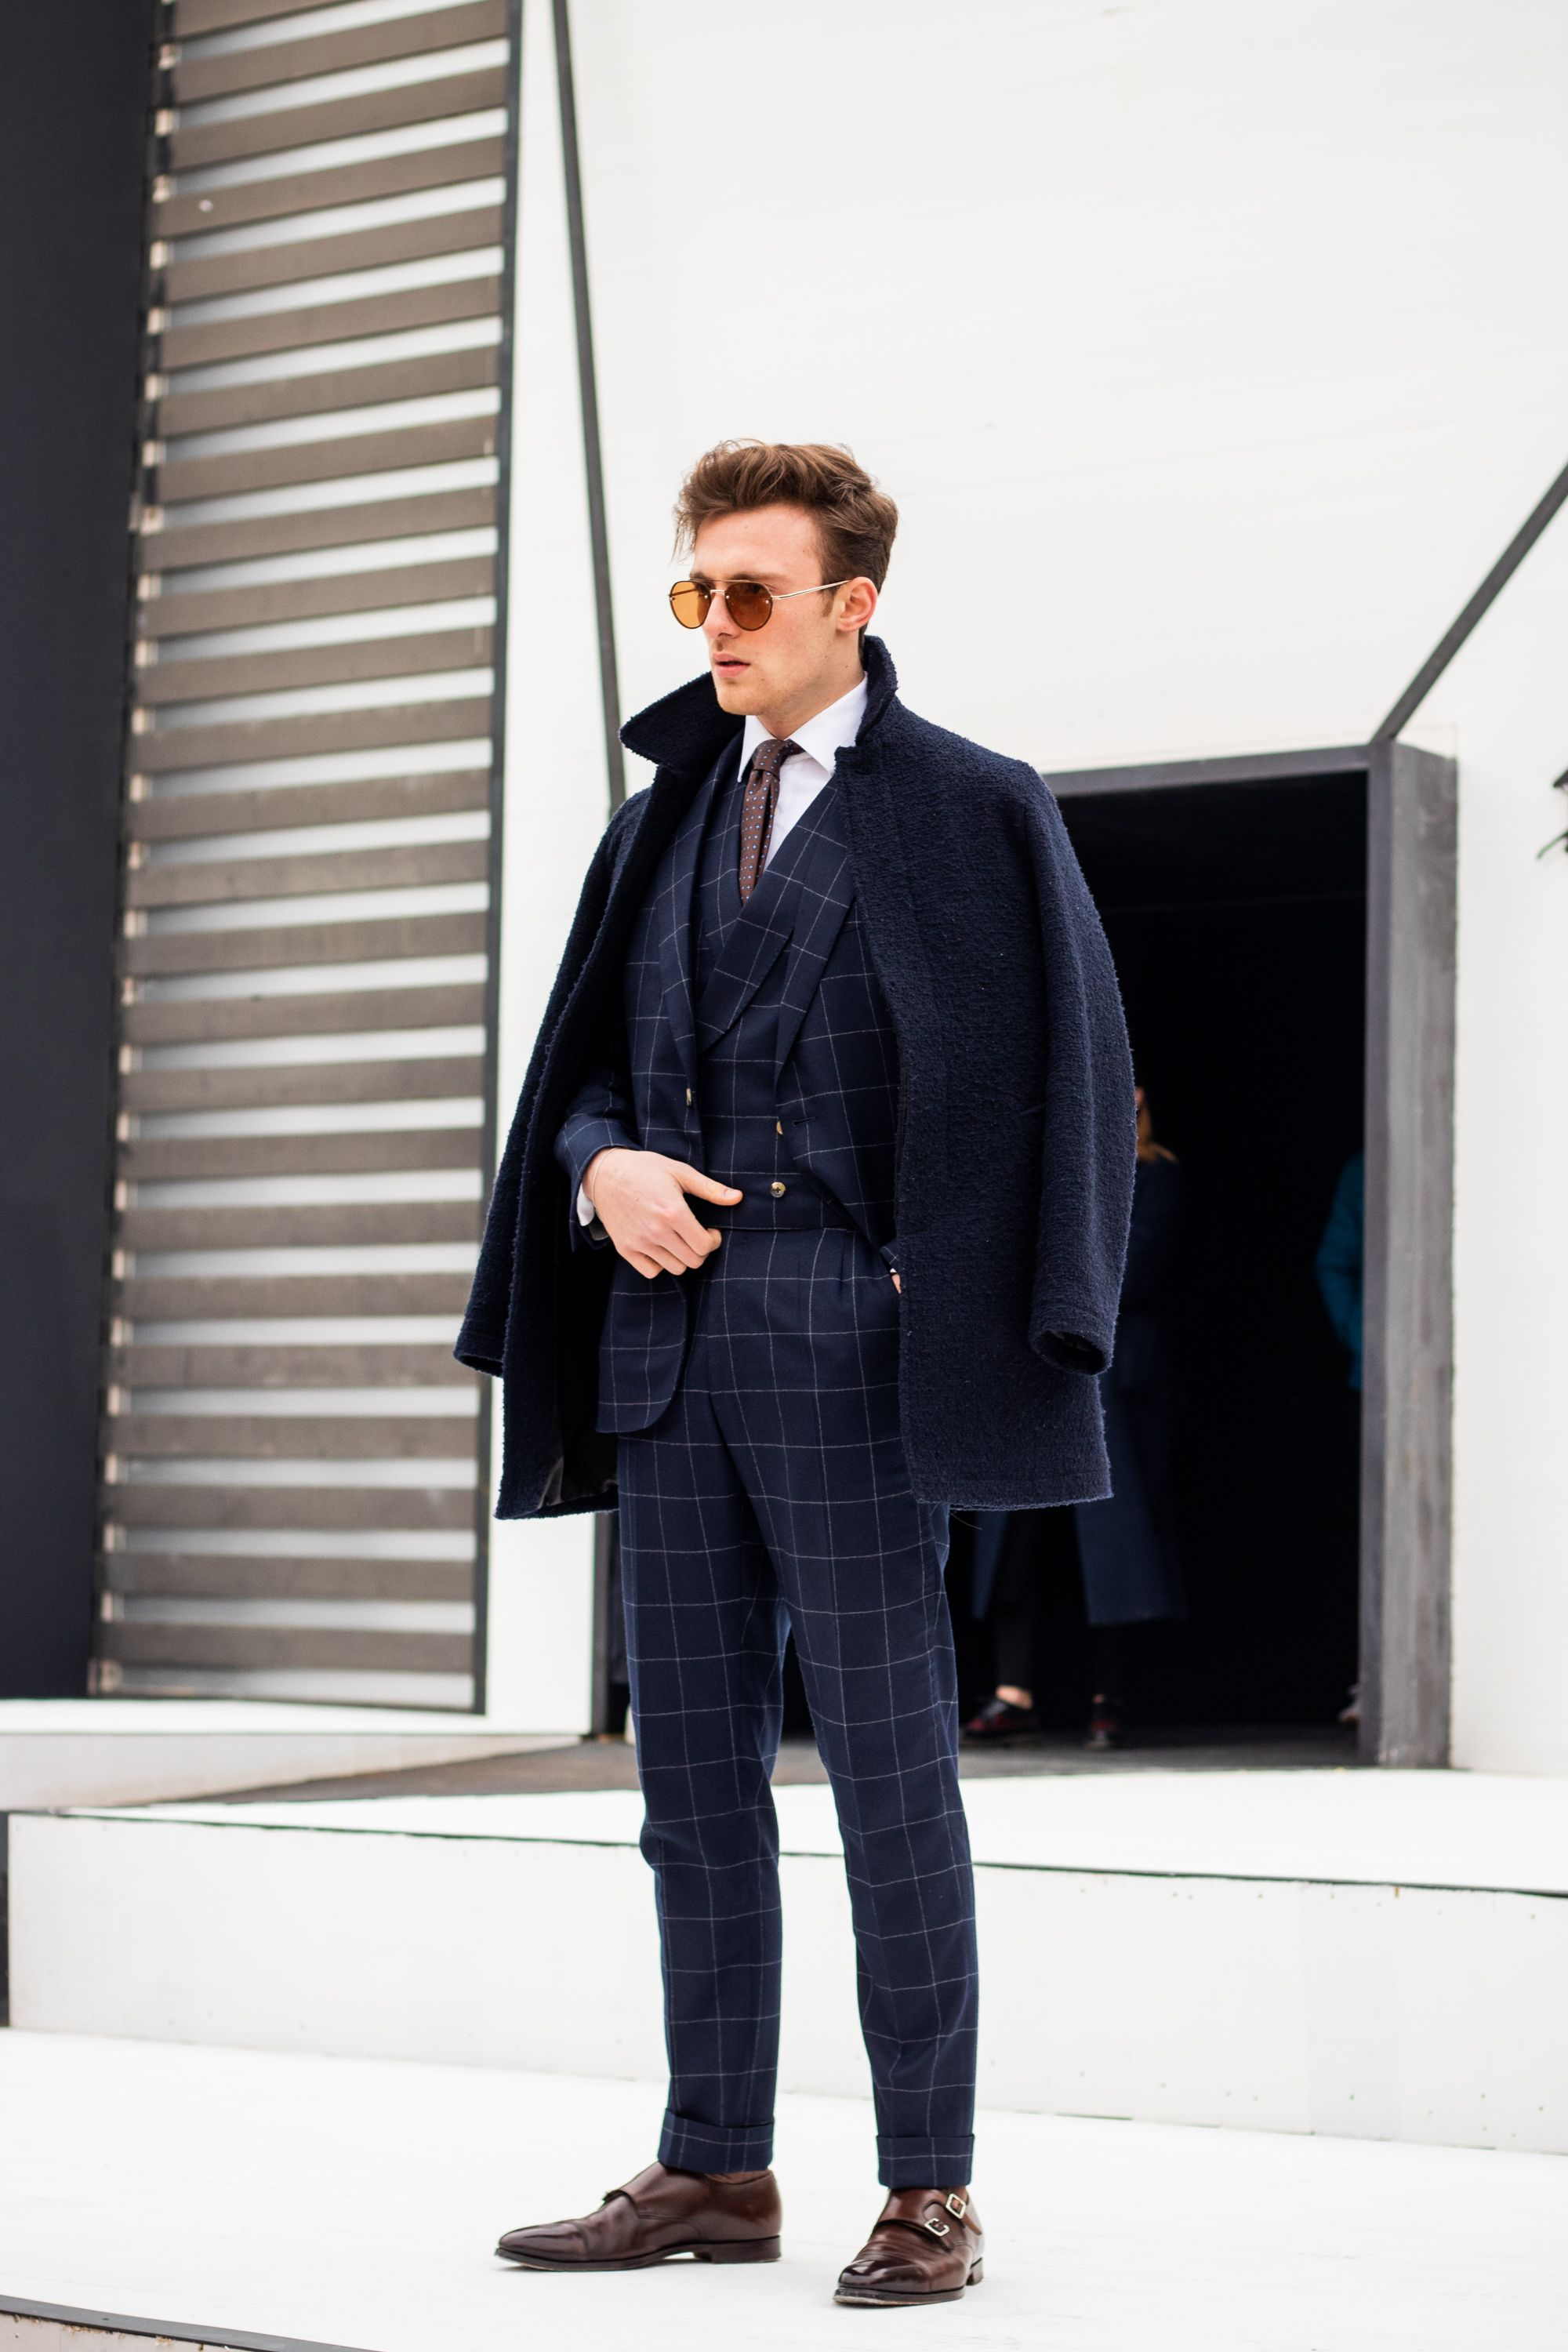 26c47882ae7 Bespoke suits and overcoats from Savile Row tailor Cad & The Dandy. Buy  bespoke suits and men's accessories from Cad & The Dandy in London, New  York and ...